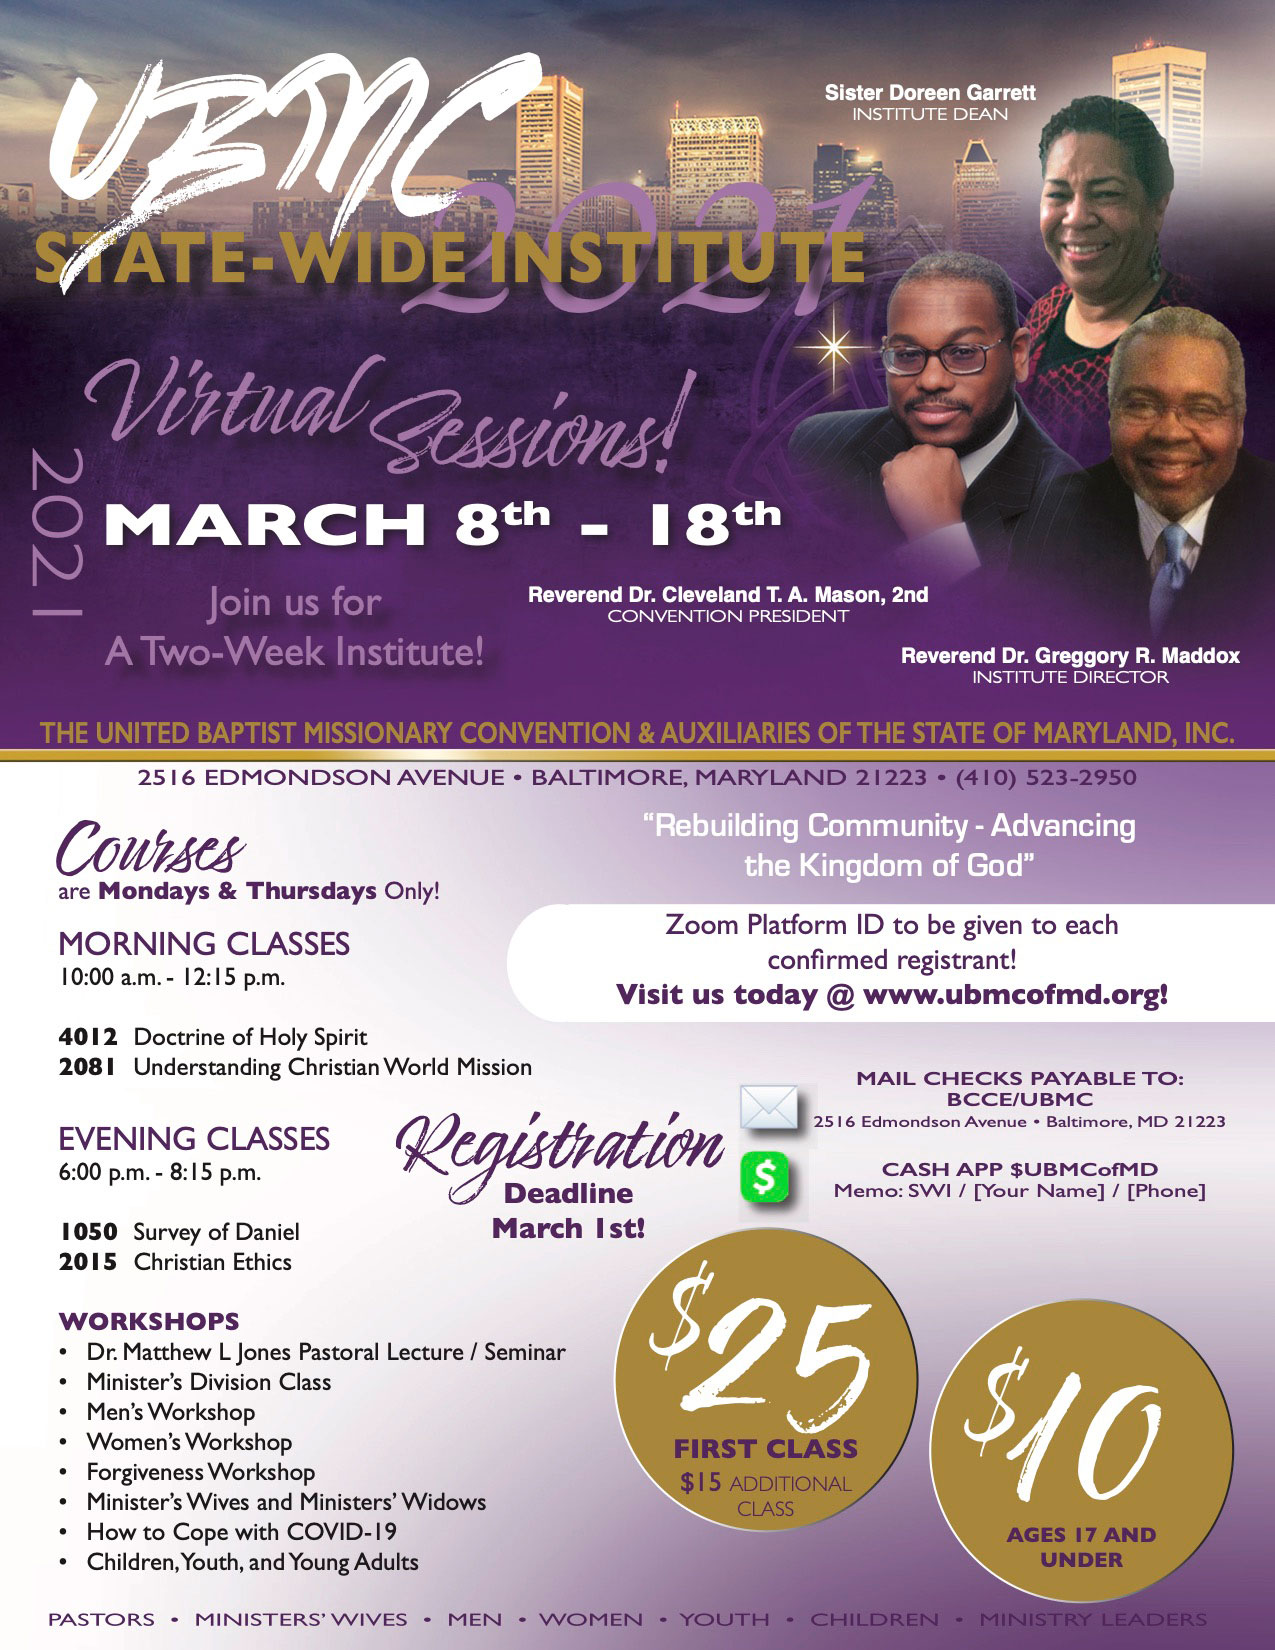 UBMC State-Wide Institute Virtual Sessions Flyer